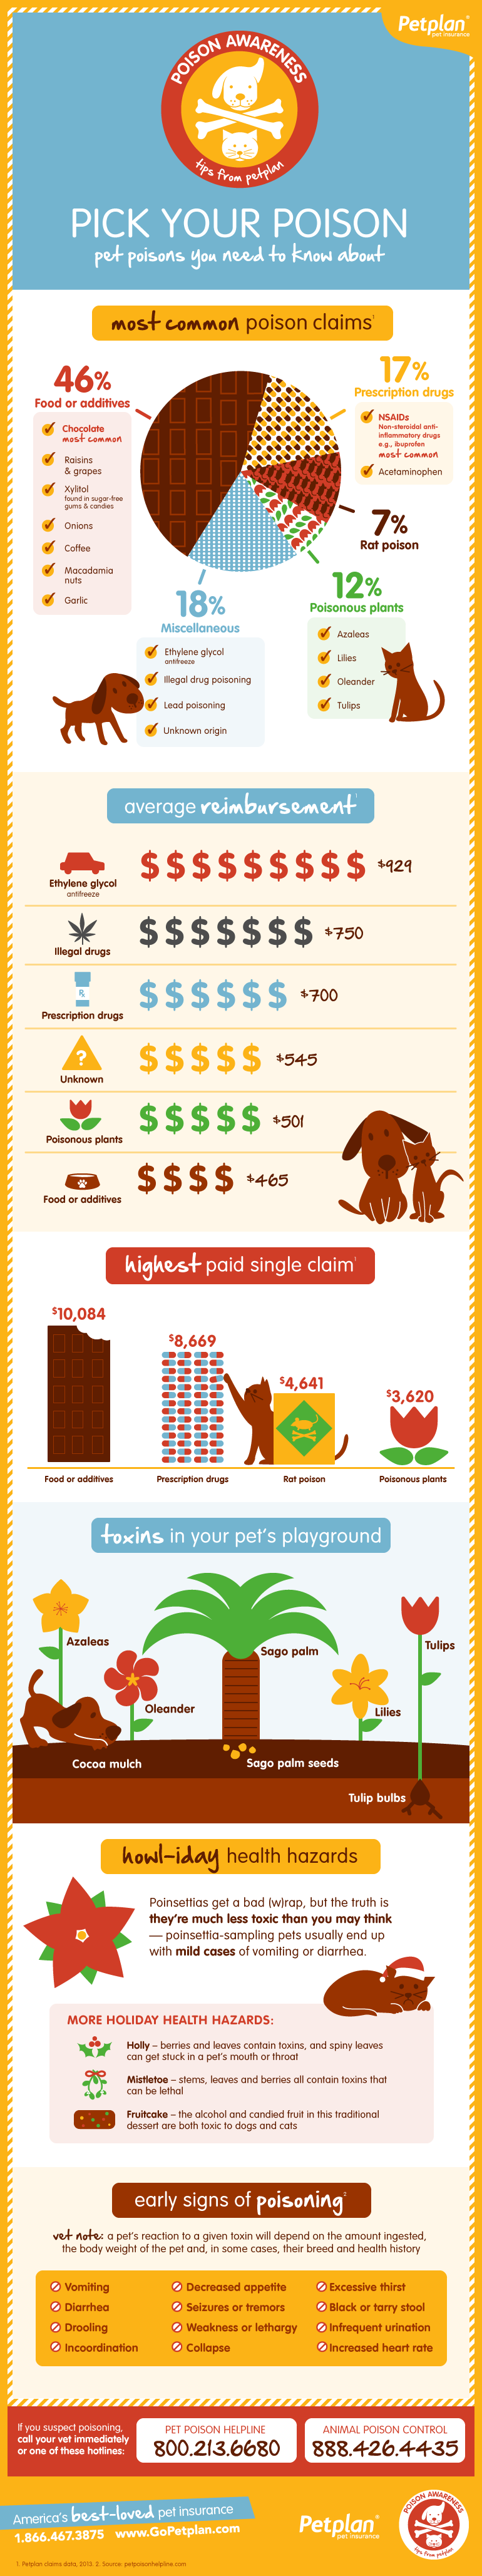 Pet Poison Awareness Infographic From Petplan Stating The Obvious